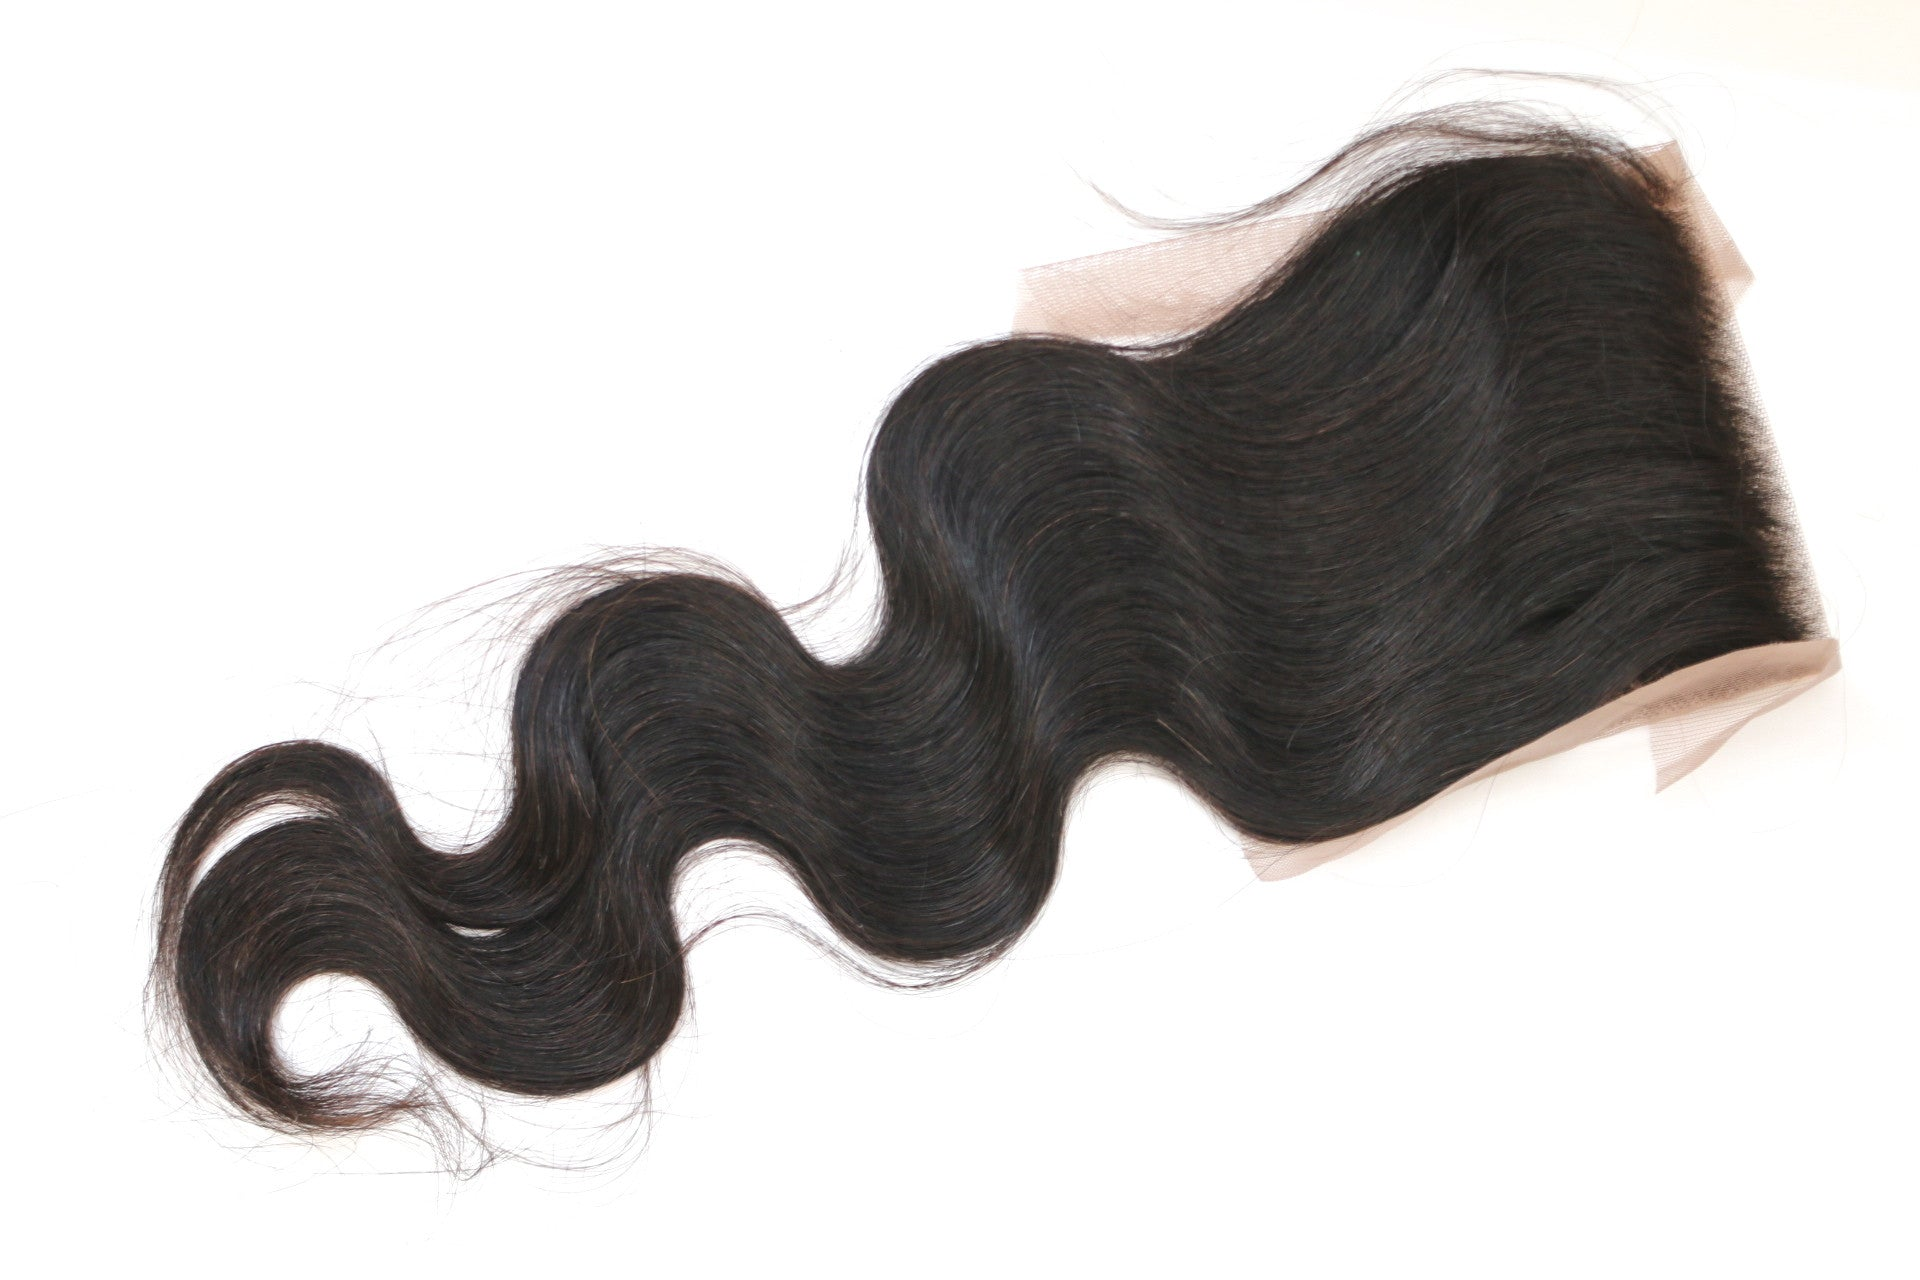 RADIANCE BRAZILIAN BODY WAVE CLOSURE! CHRISTMAS SALE!